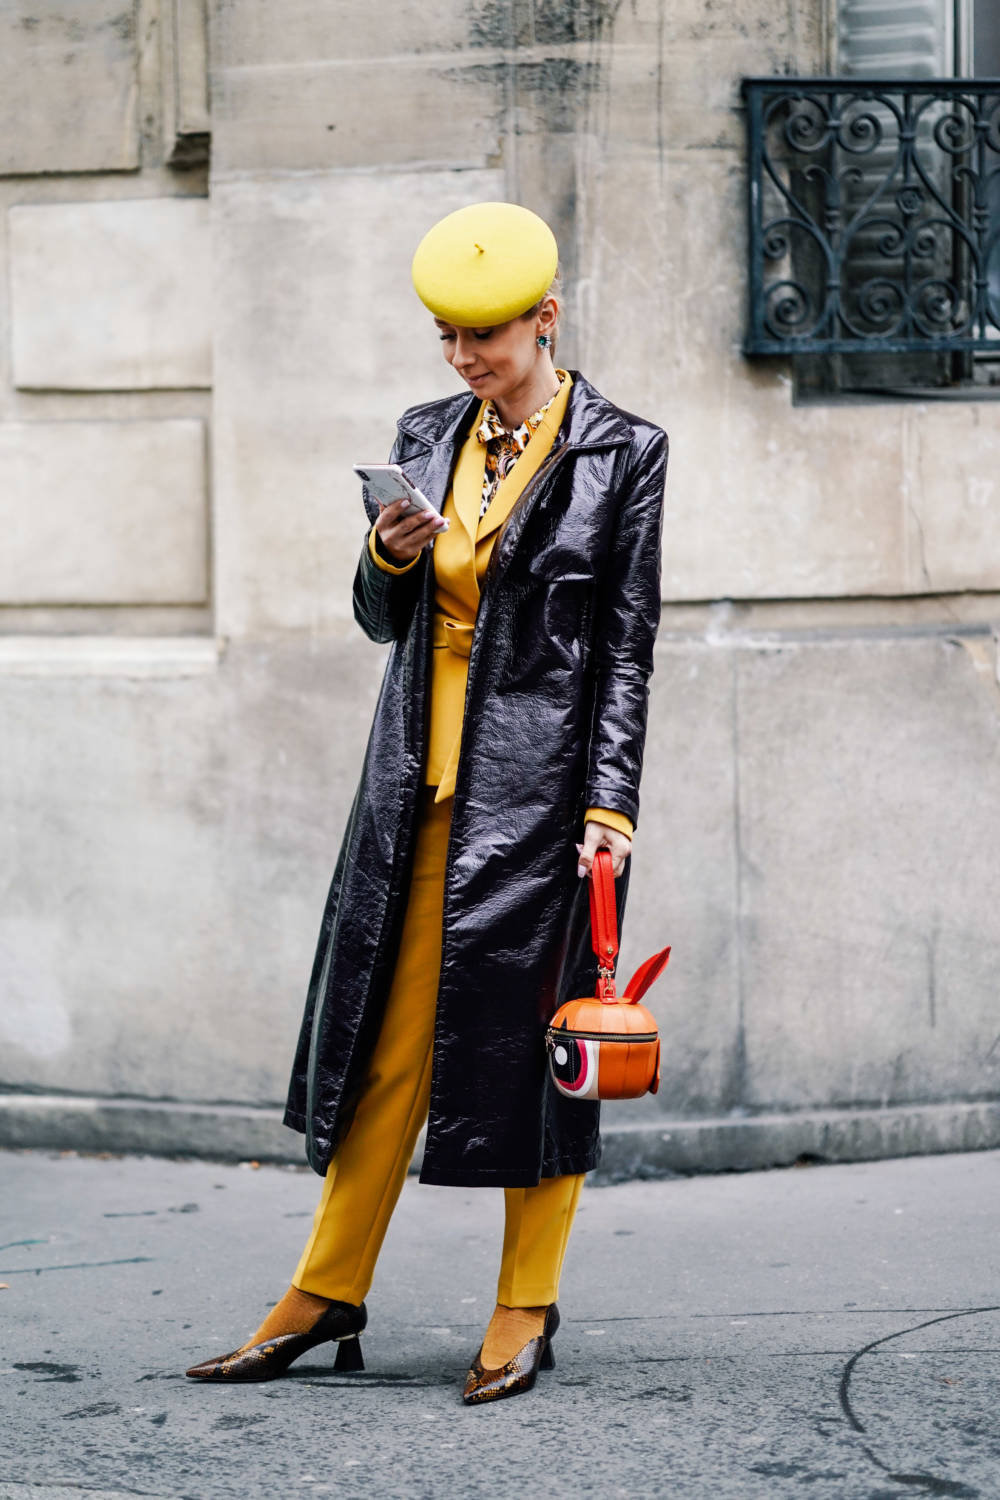 PARIS, FRANCE - MARCH 01: A guest wears a yellow beret hat, a yellow pantsuit, earrings, a shiny black vinyl raincoat, an orange-shaped handbag, a shiny golden python pattern pointy pumps with fantasy heels, yellow socks , outside Issey Miyake, during Paris Fashion Week Womenswear Fall/Winter 2019/2020, on March 01, 2019 in Paris, France. (Photo by Edward Berthelot/Getty Images)